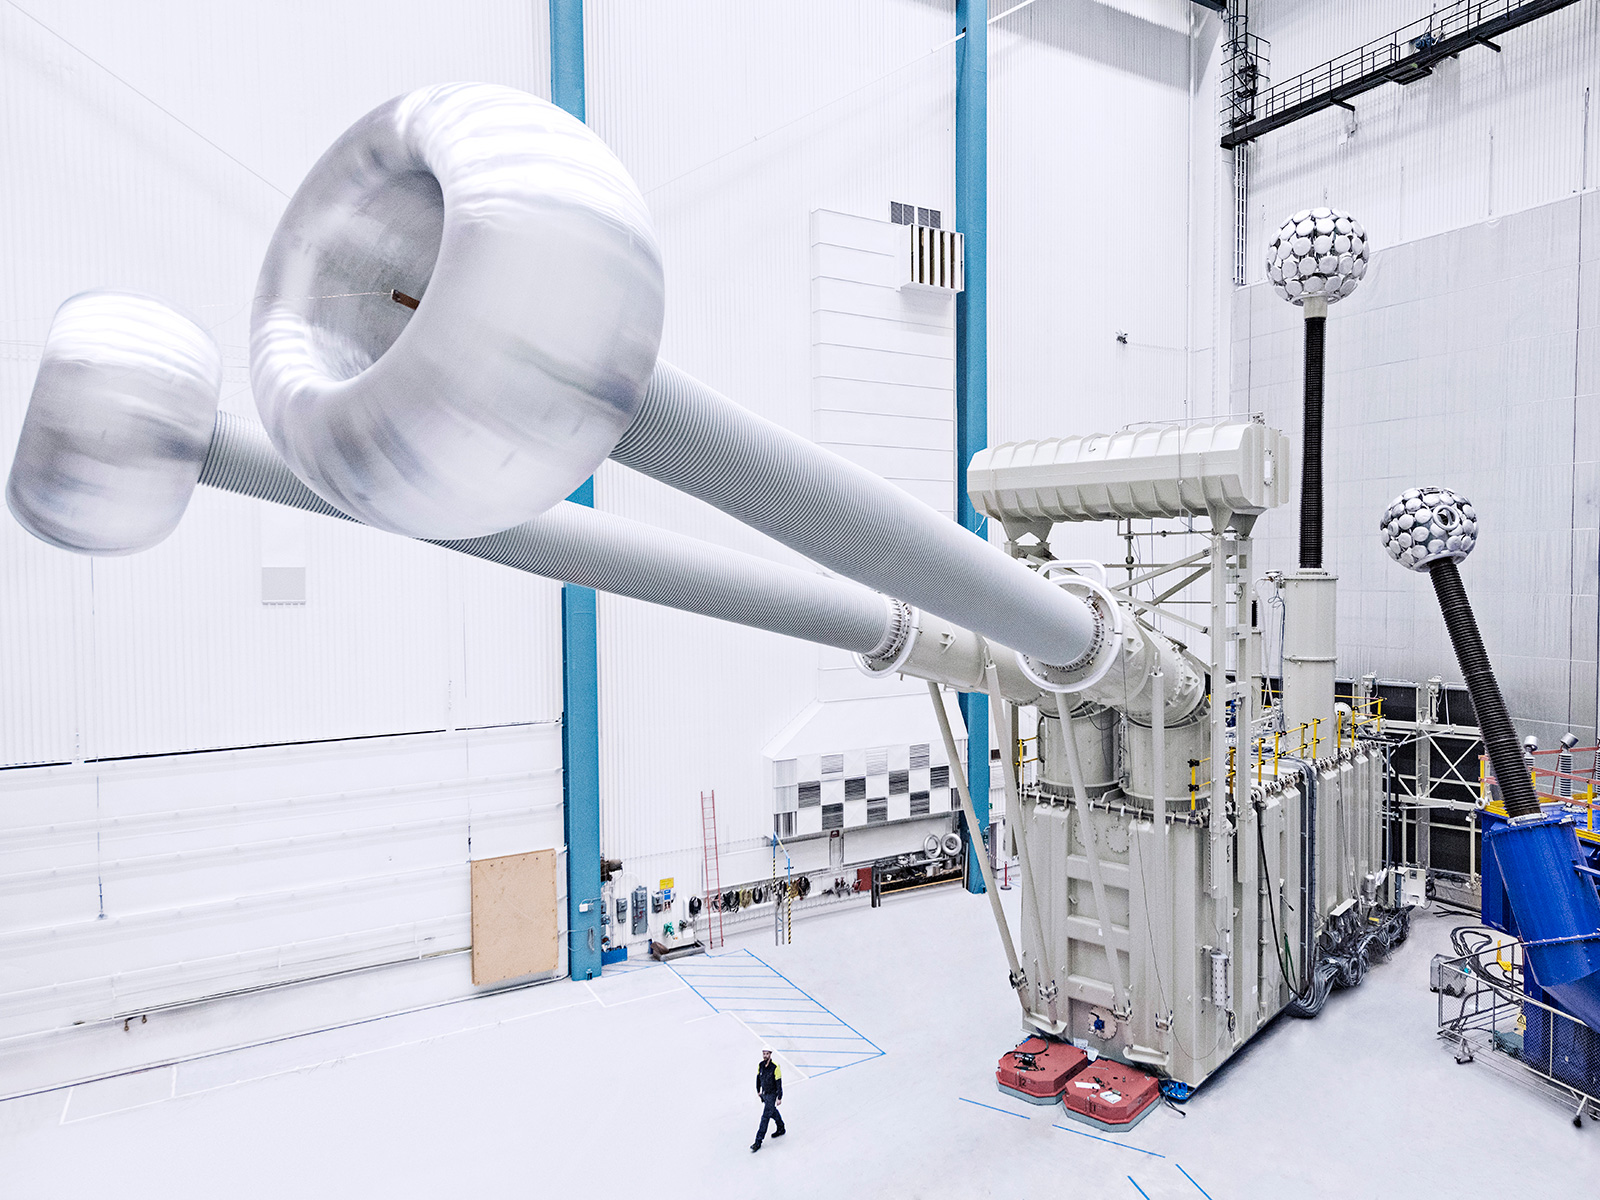 hight resolution of abb has set another pioneering innovation record with the successful testing of the low and high voltage units of the world s most powerful